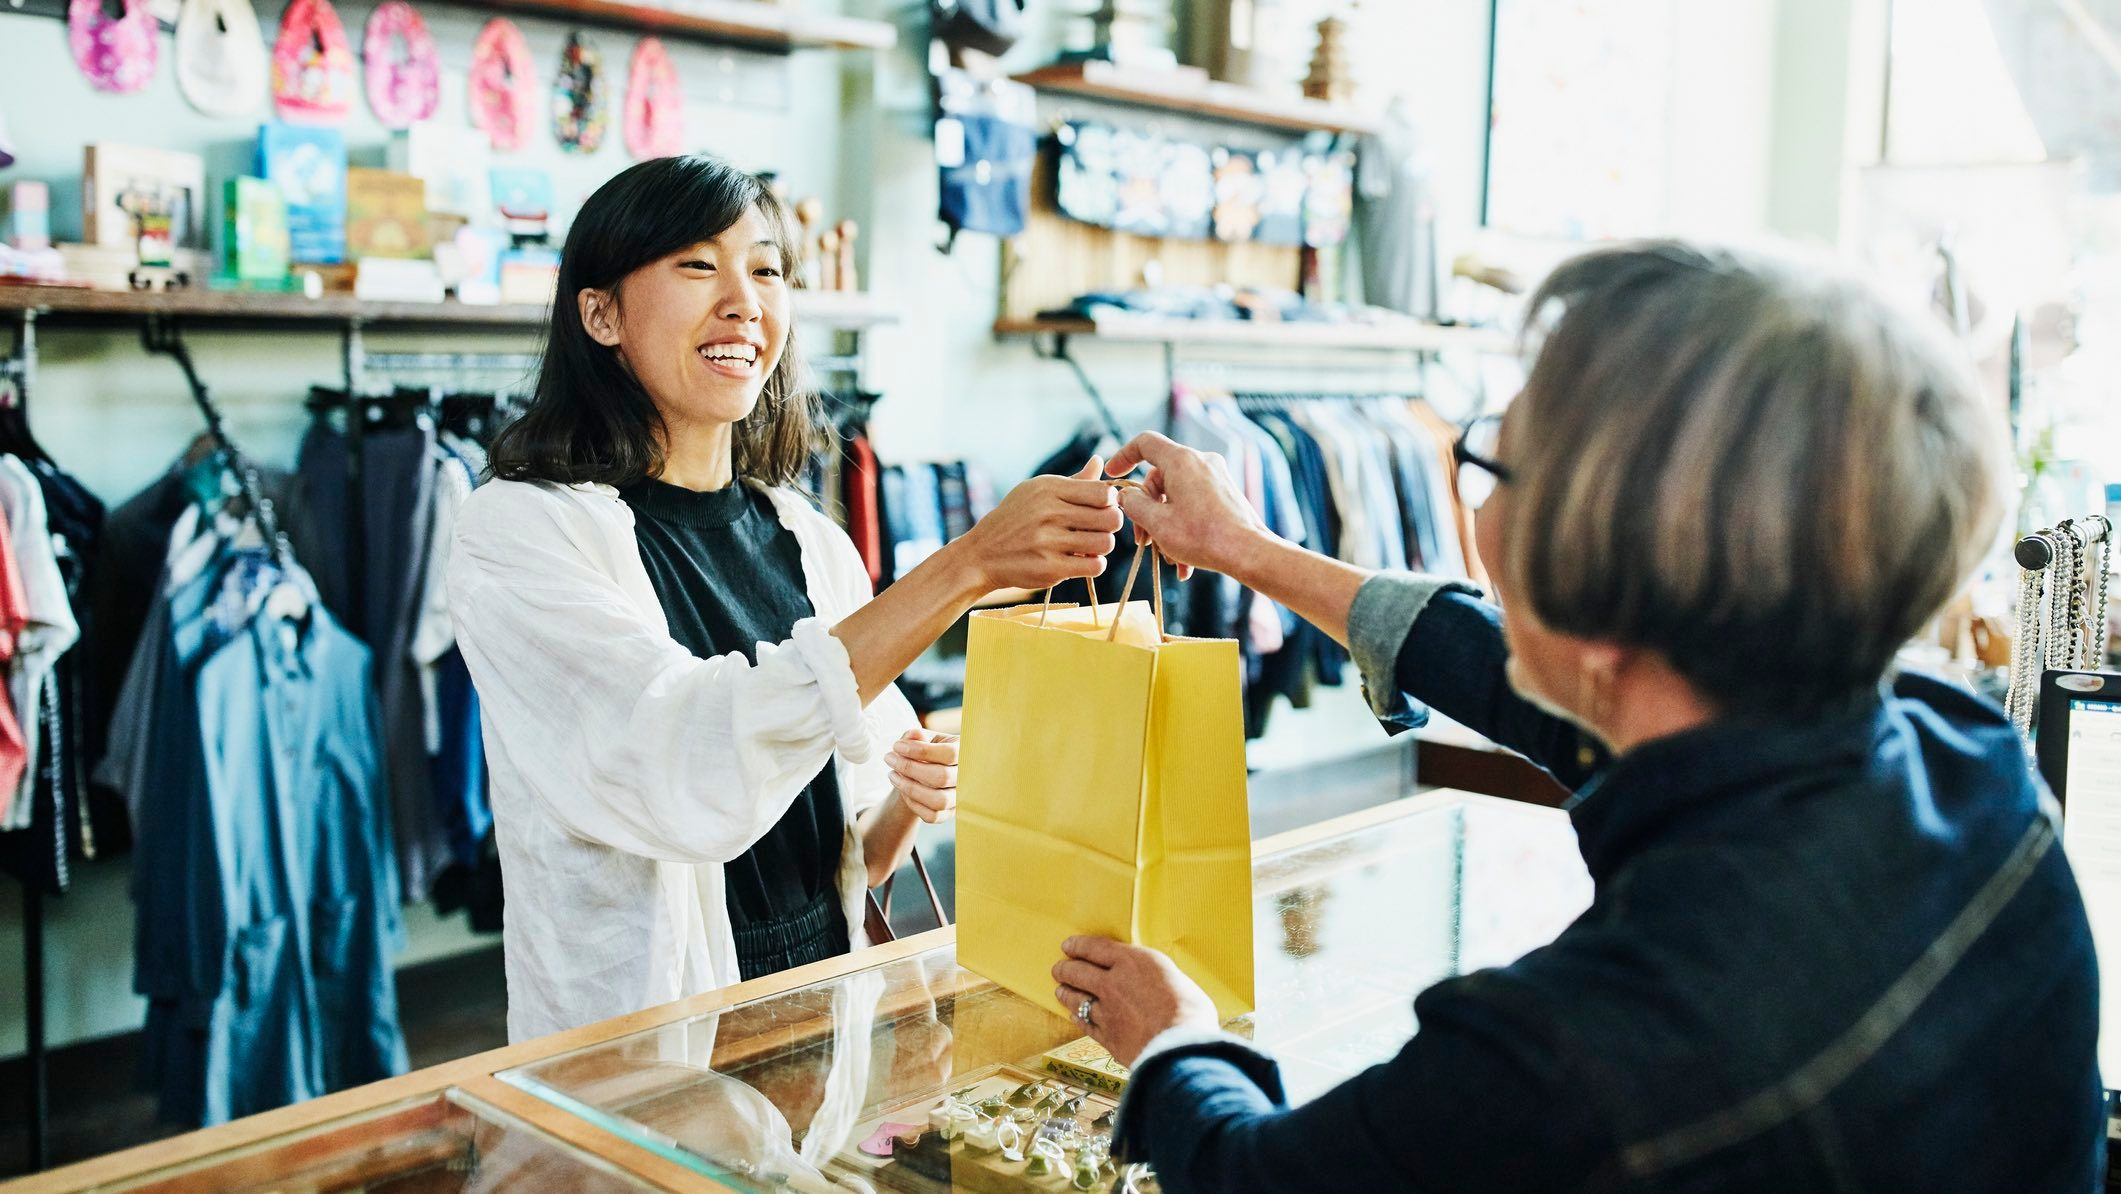 Young person shopping while considering sustainability.